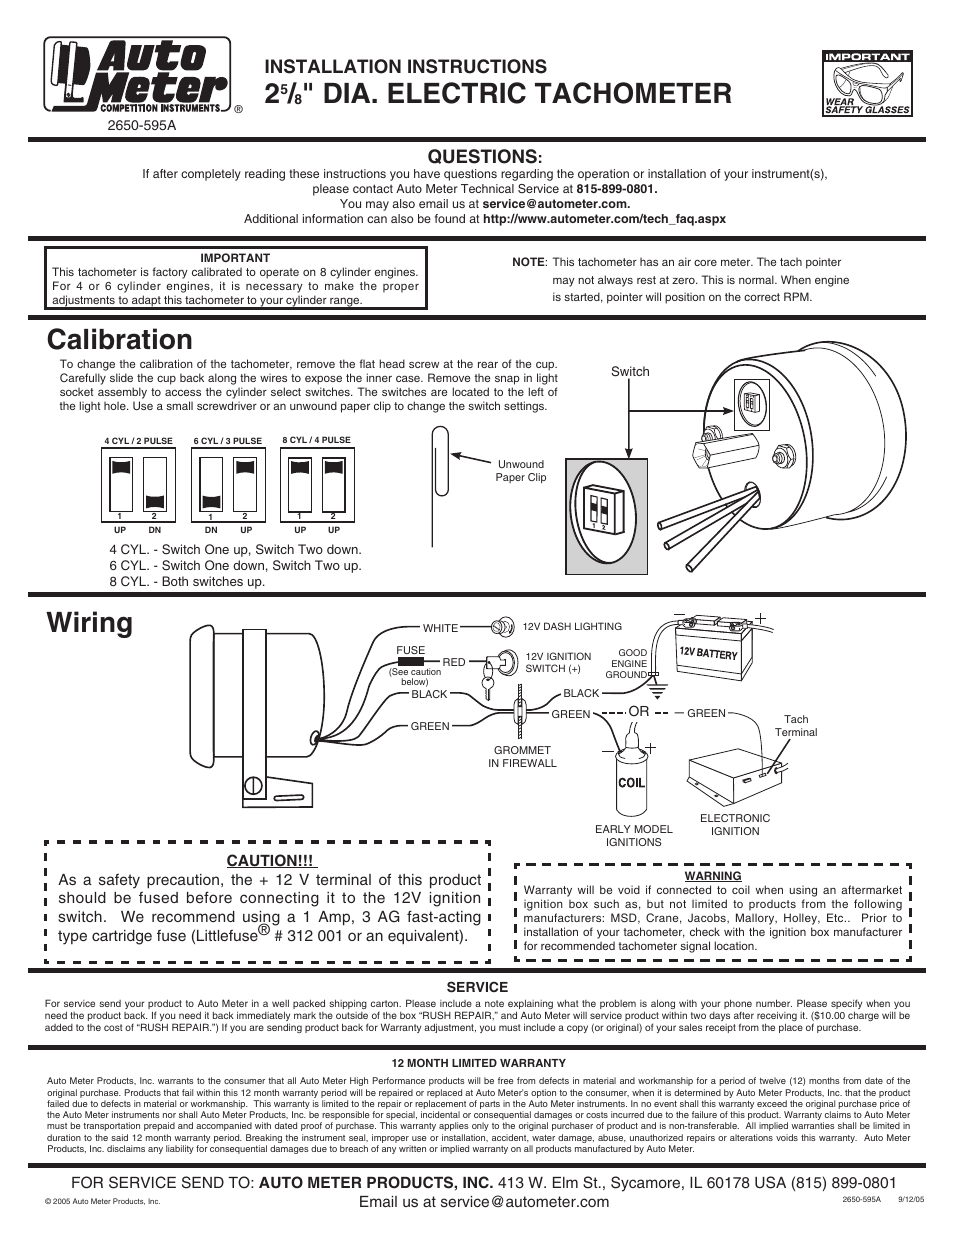 Autometer Oil Pressure Gauge Wiring Diagram from schematron.org